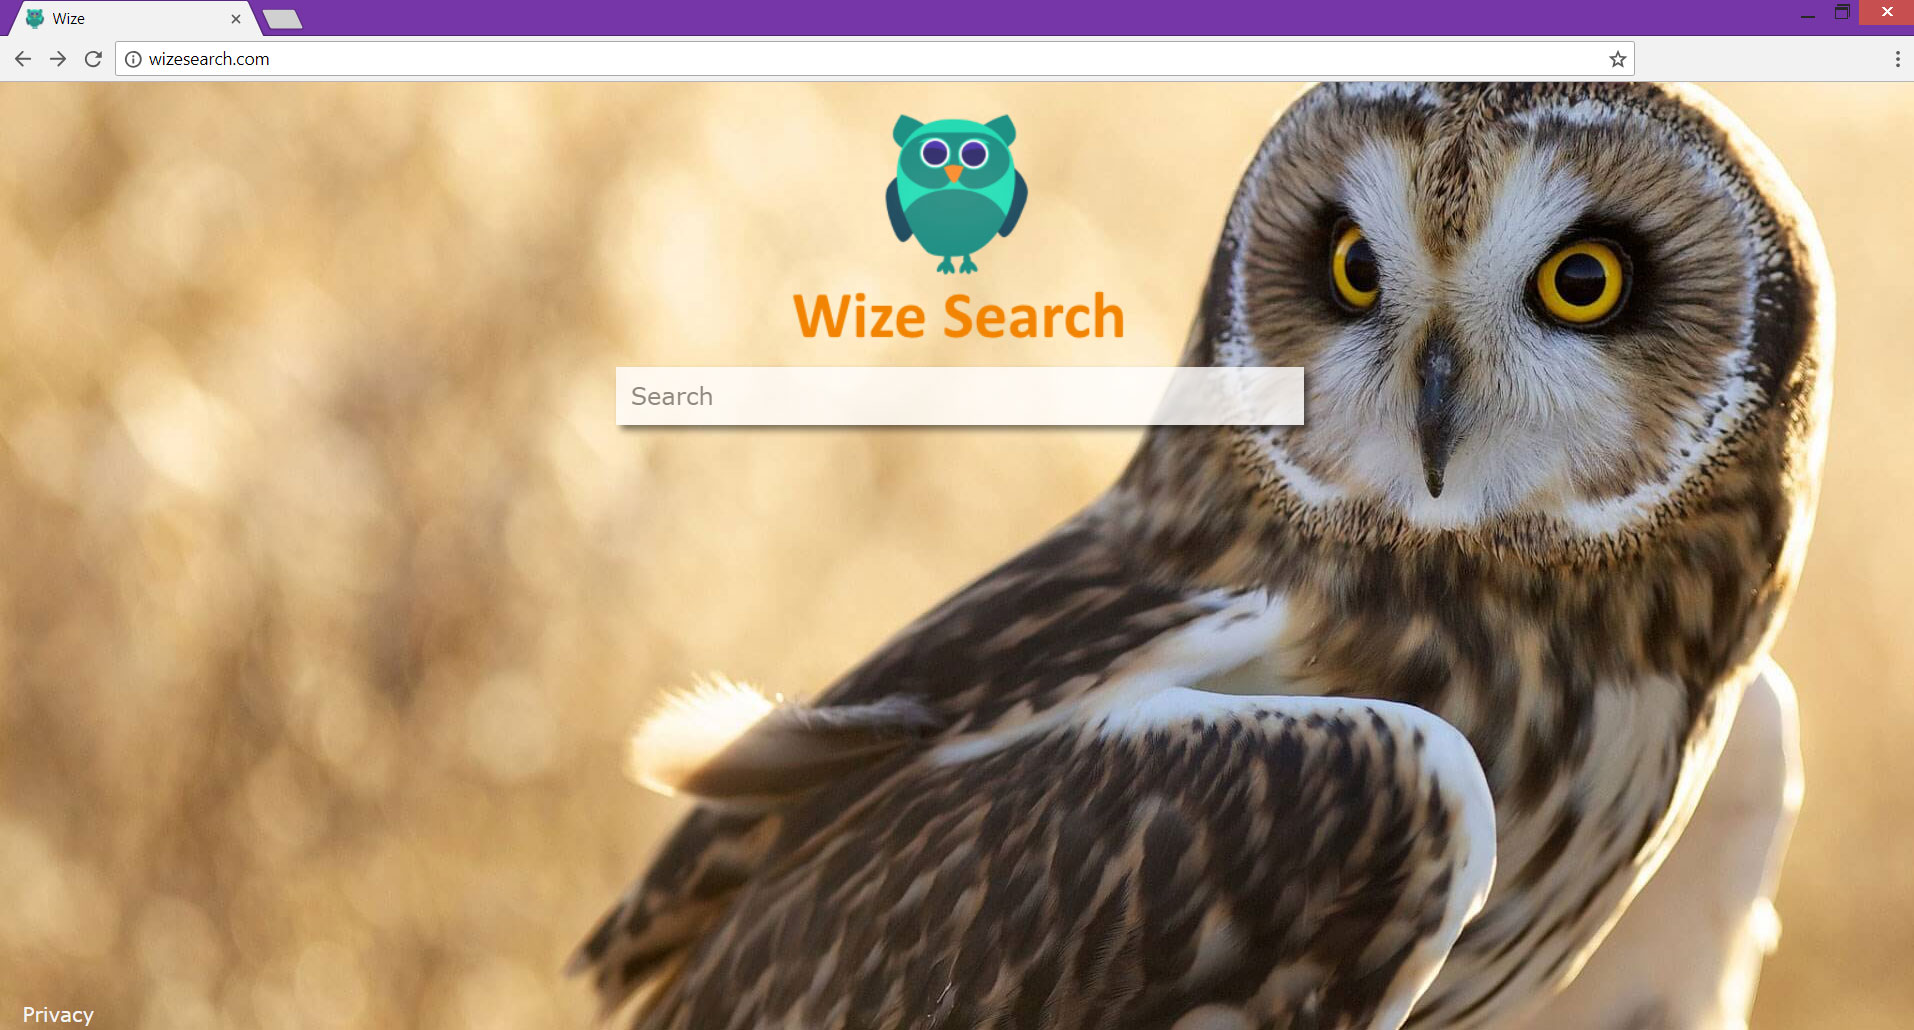 Wizesearch.com redirect modifies search results